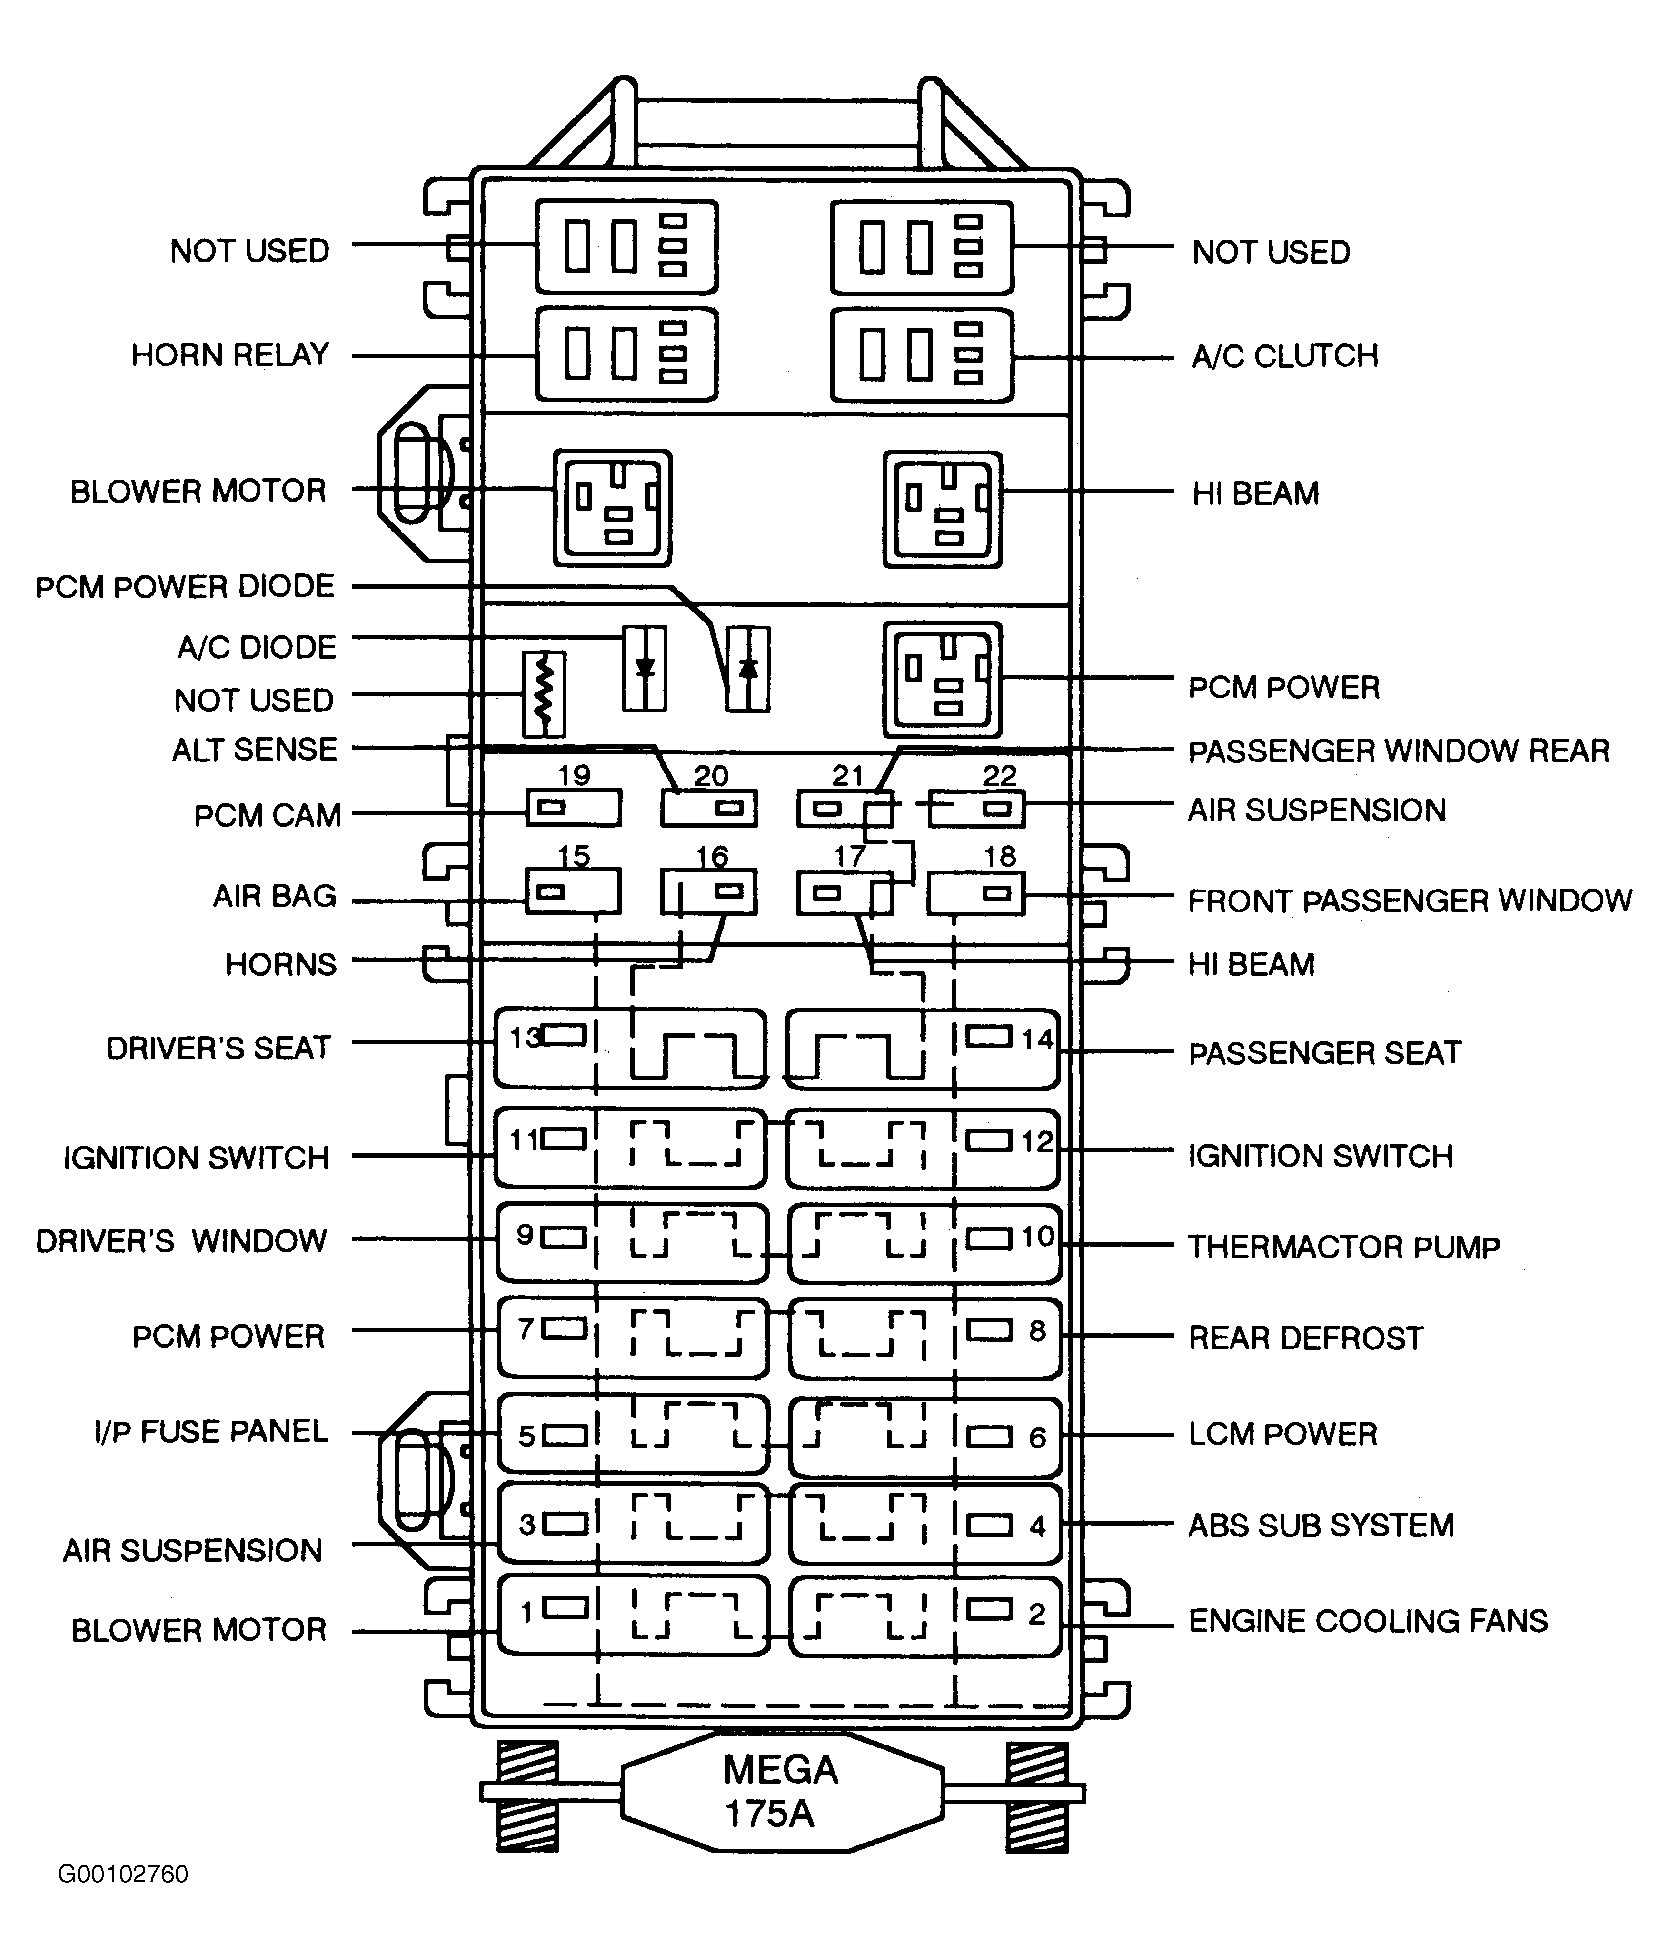 hight resolution of car fuse box symbols wiring diagram article review 1996 lincoln town car fuse panel diagram wiring